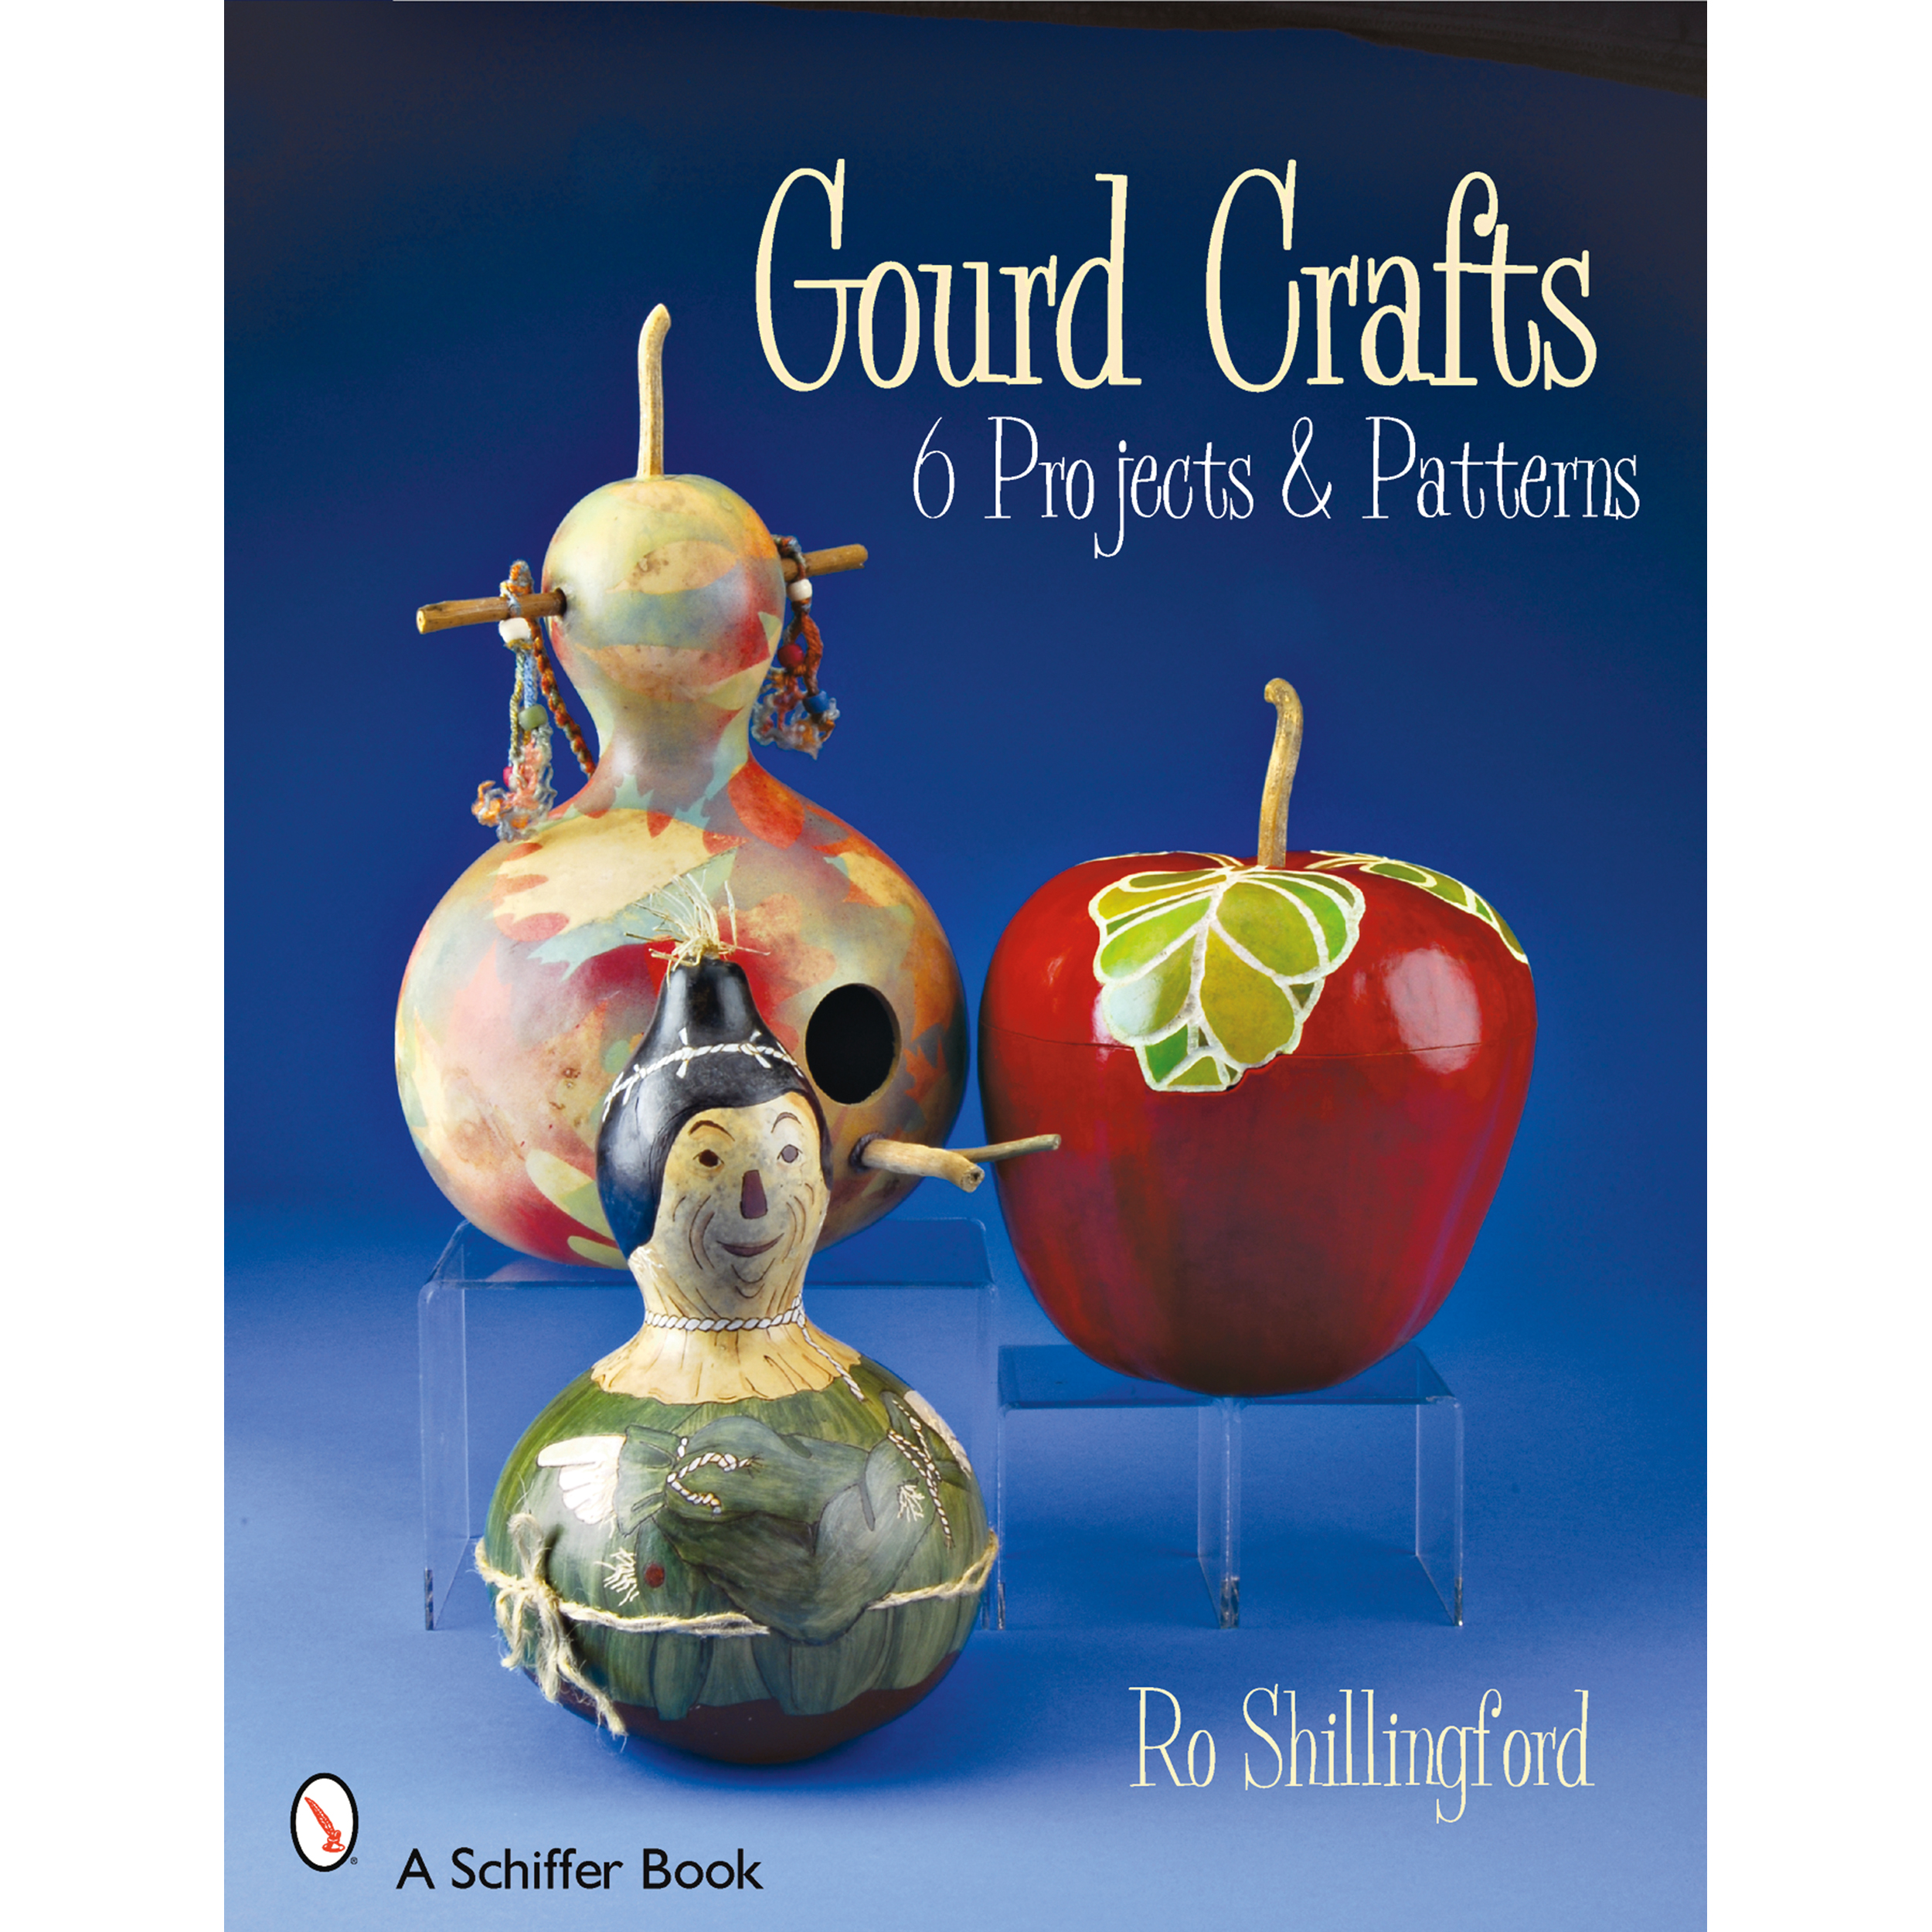 Gourd Crafts: 6 Projects & Patterns